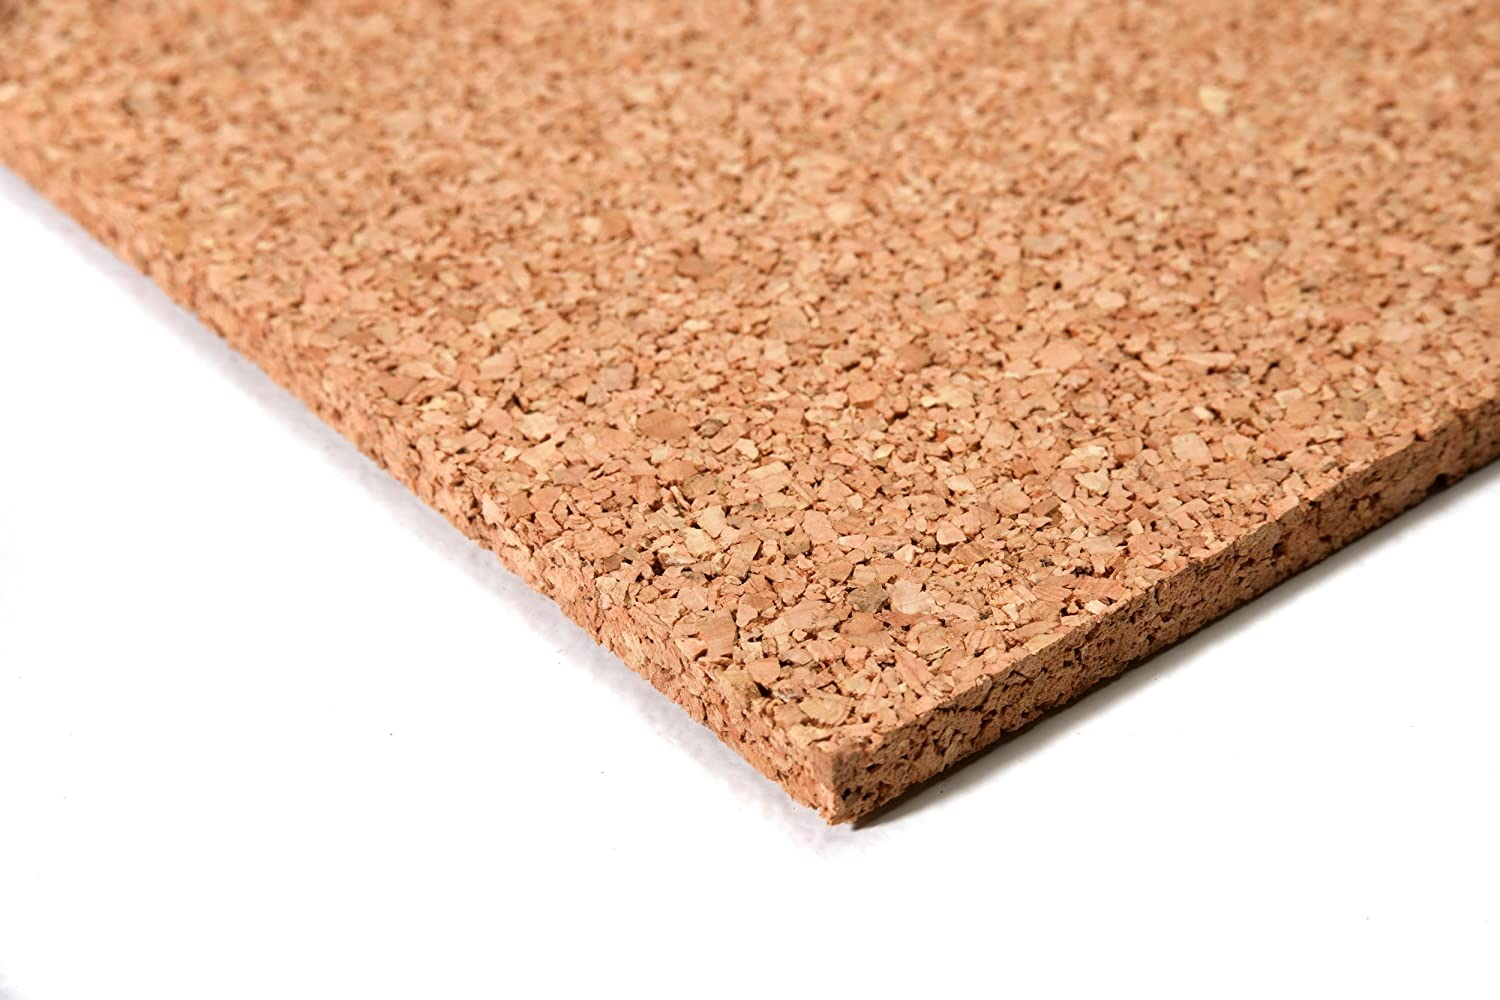 High quality cork board 100x100cm, 10mm ✓ Elastic ✓ Non-polluting ✓ Antistatic | Suitable as Bulletin board, Acoustic insulation for floors, Thermal insulation, Wall decor acerto